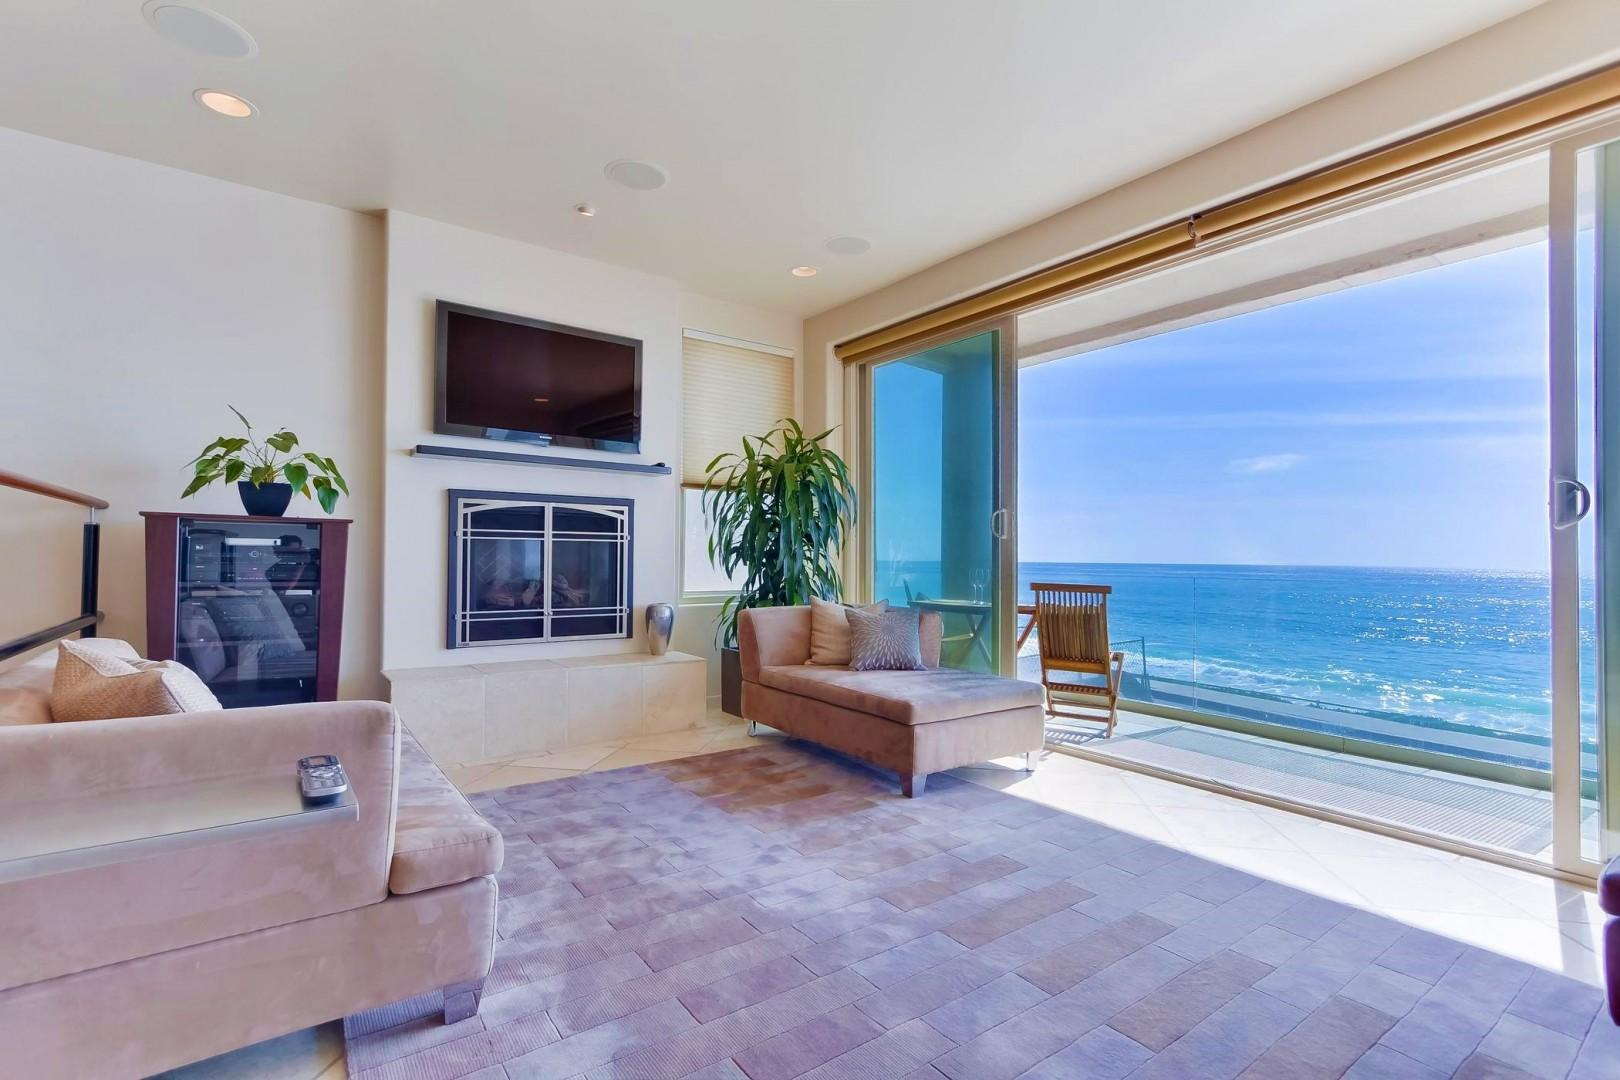 Ocean and beach views from living room